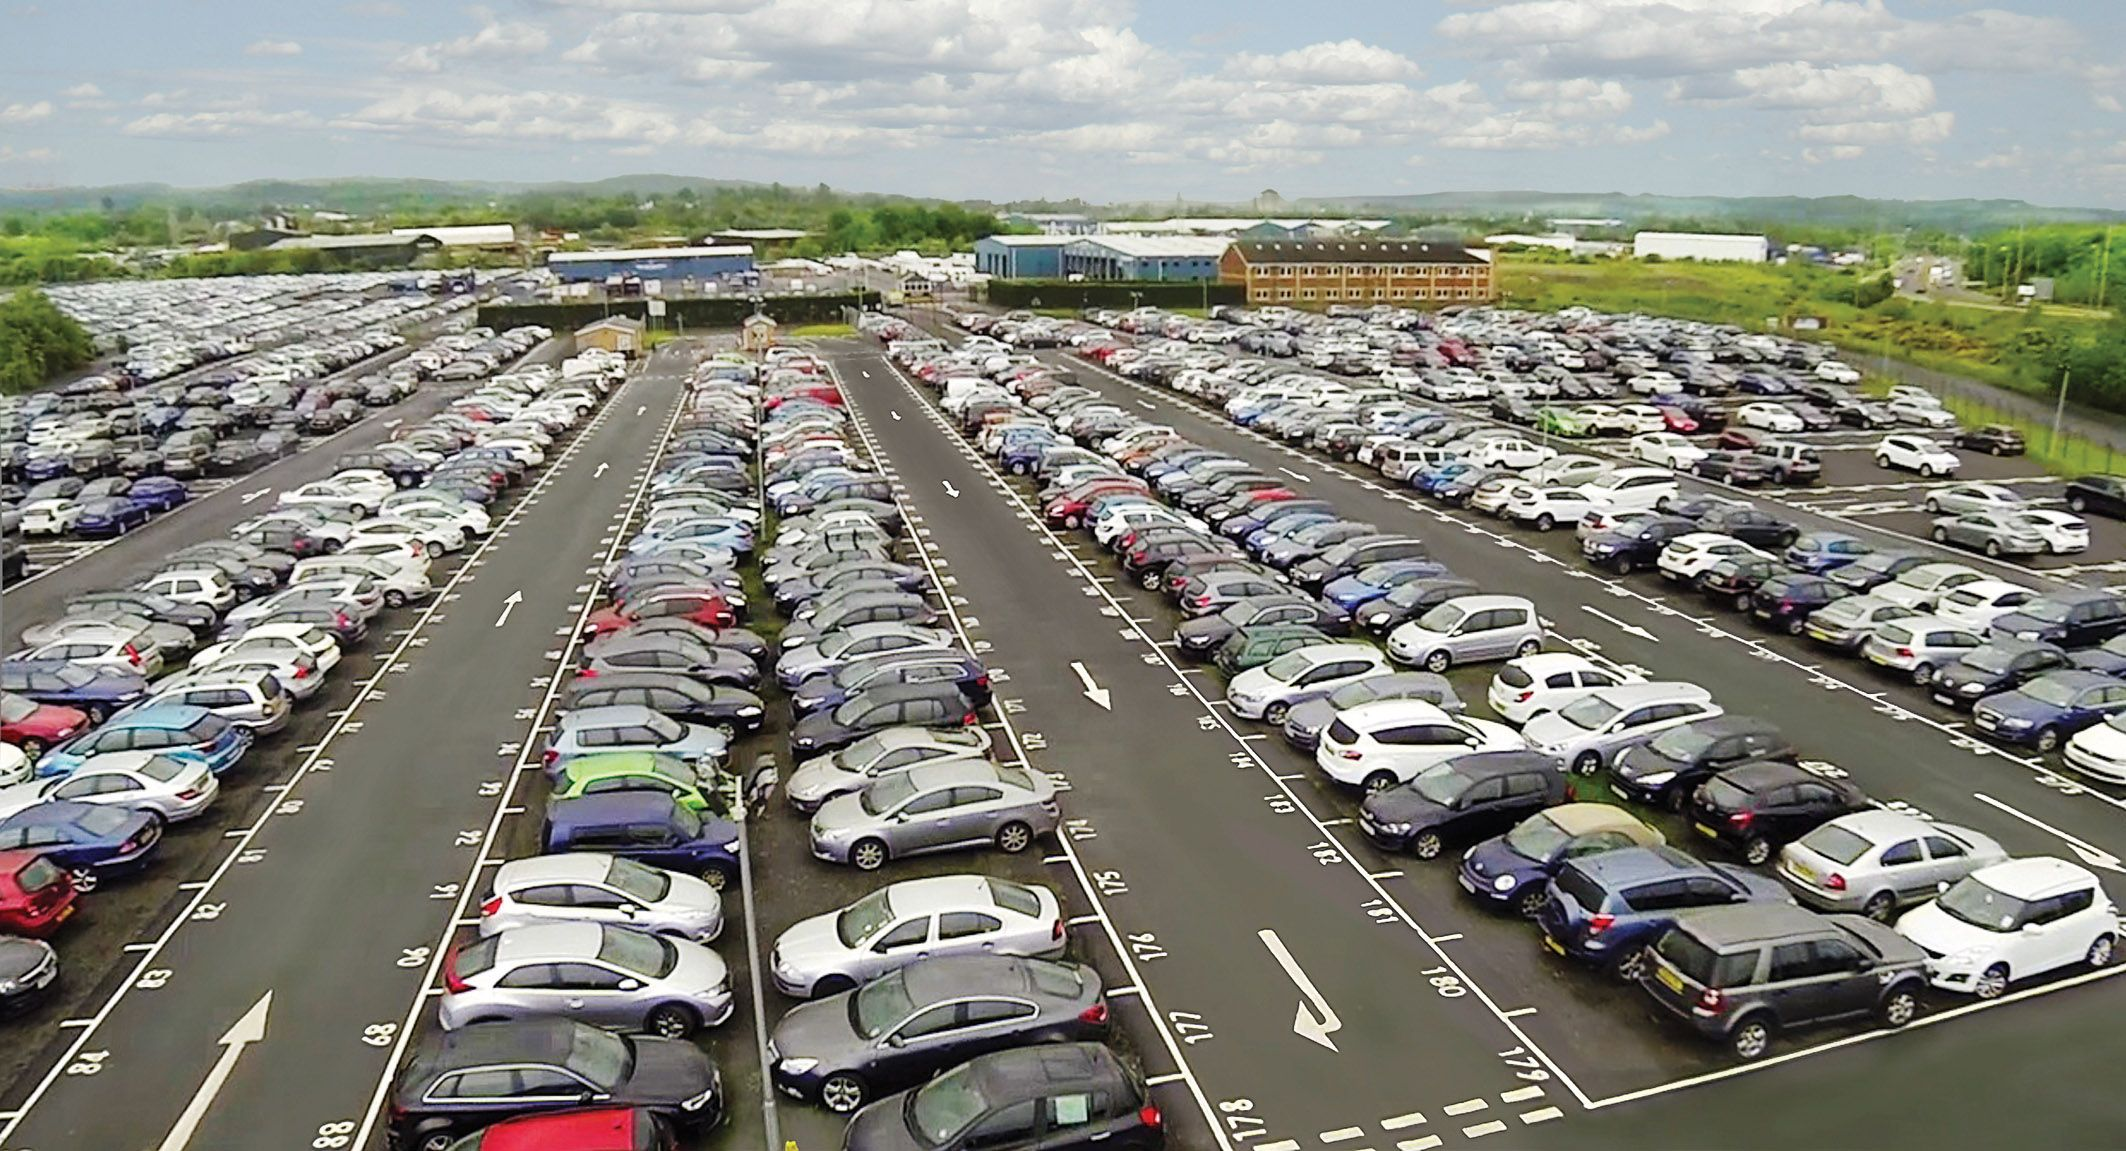 Meet And Greet Parking Heathrow We Provide Safe And Secure Off Site